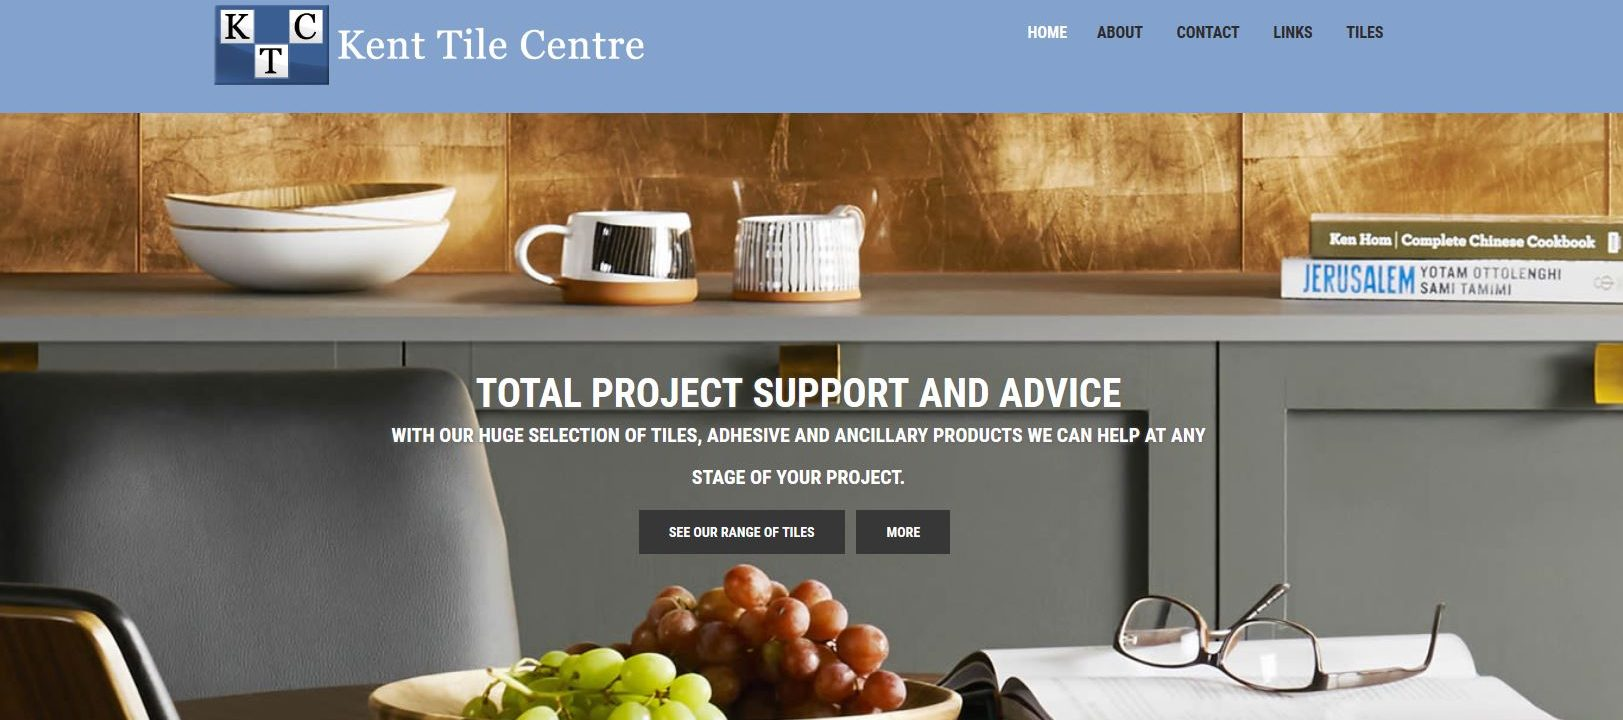 Kent tile centre website design